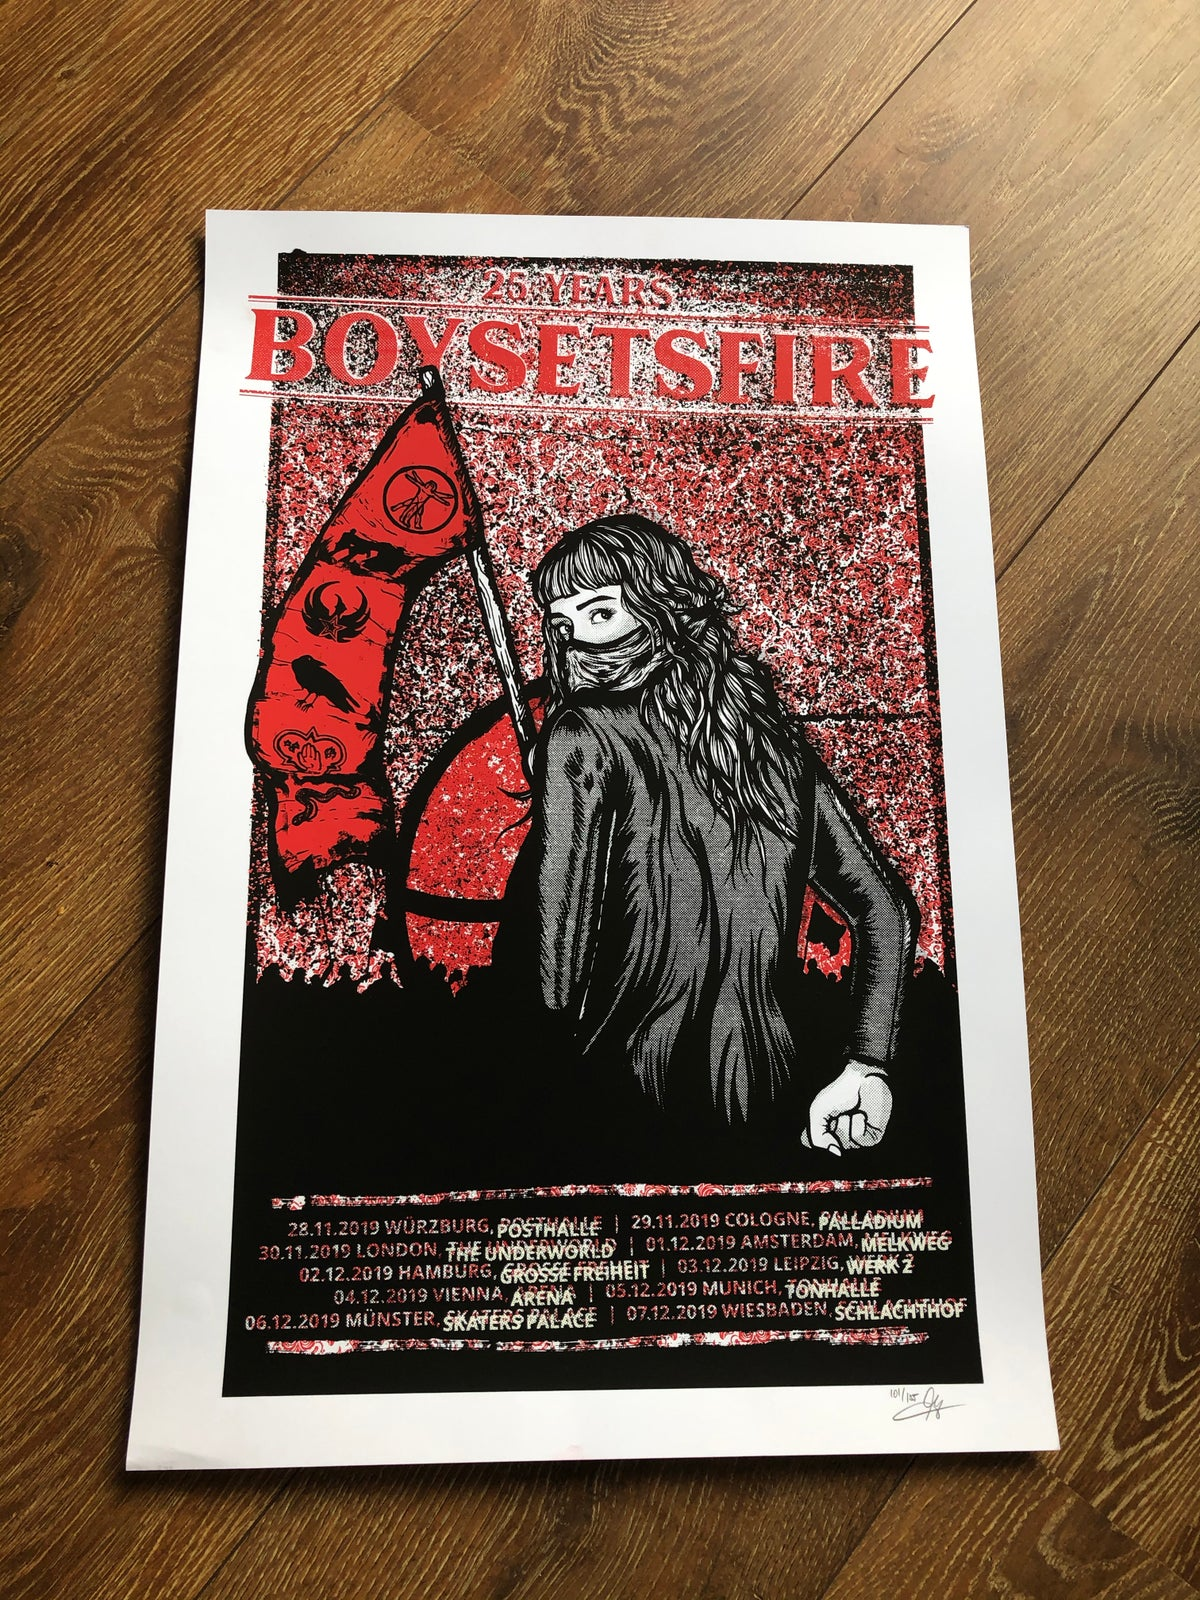 Image of Boysetsfire Tour Poster 2019